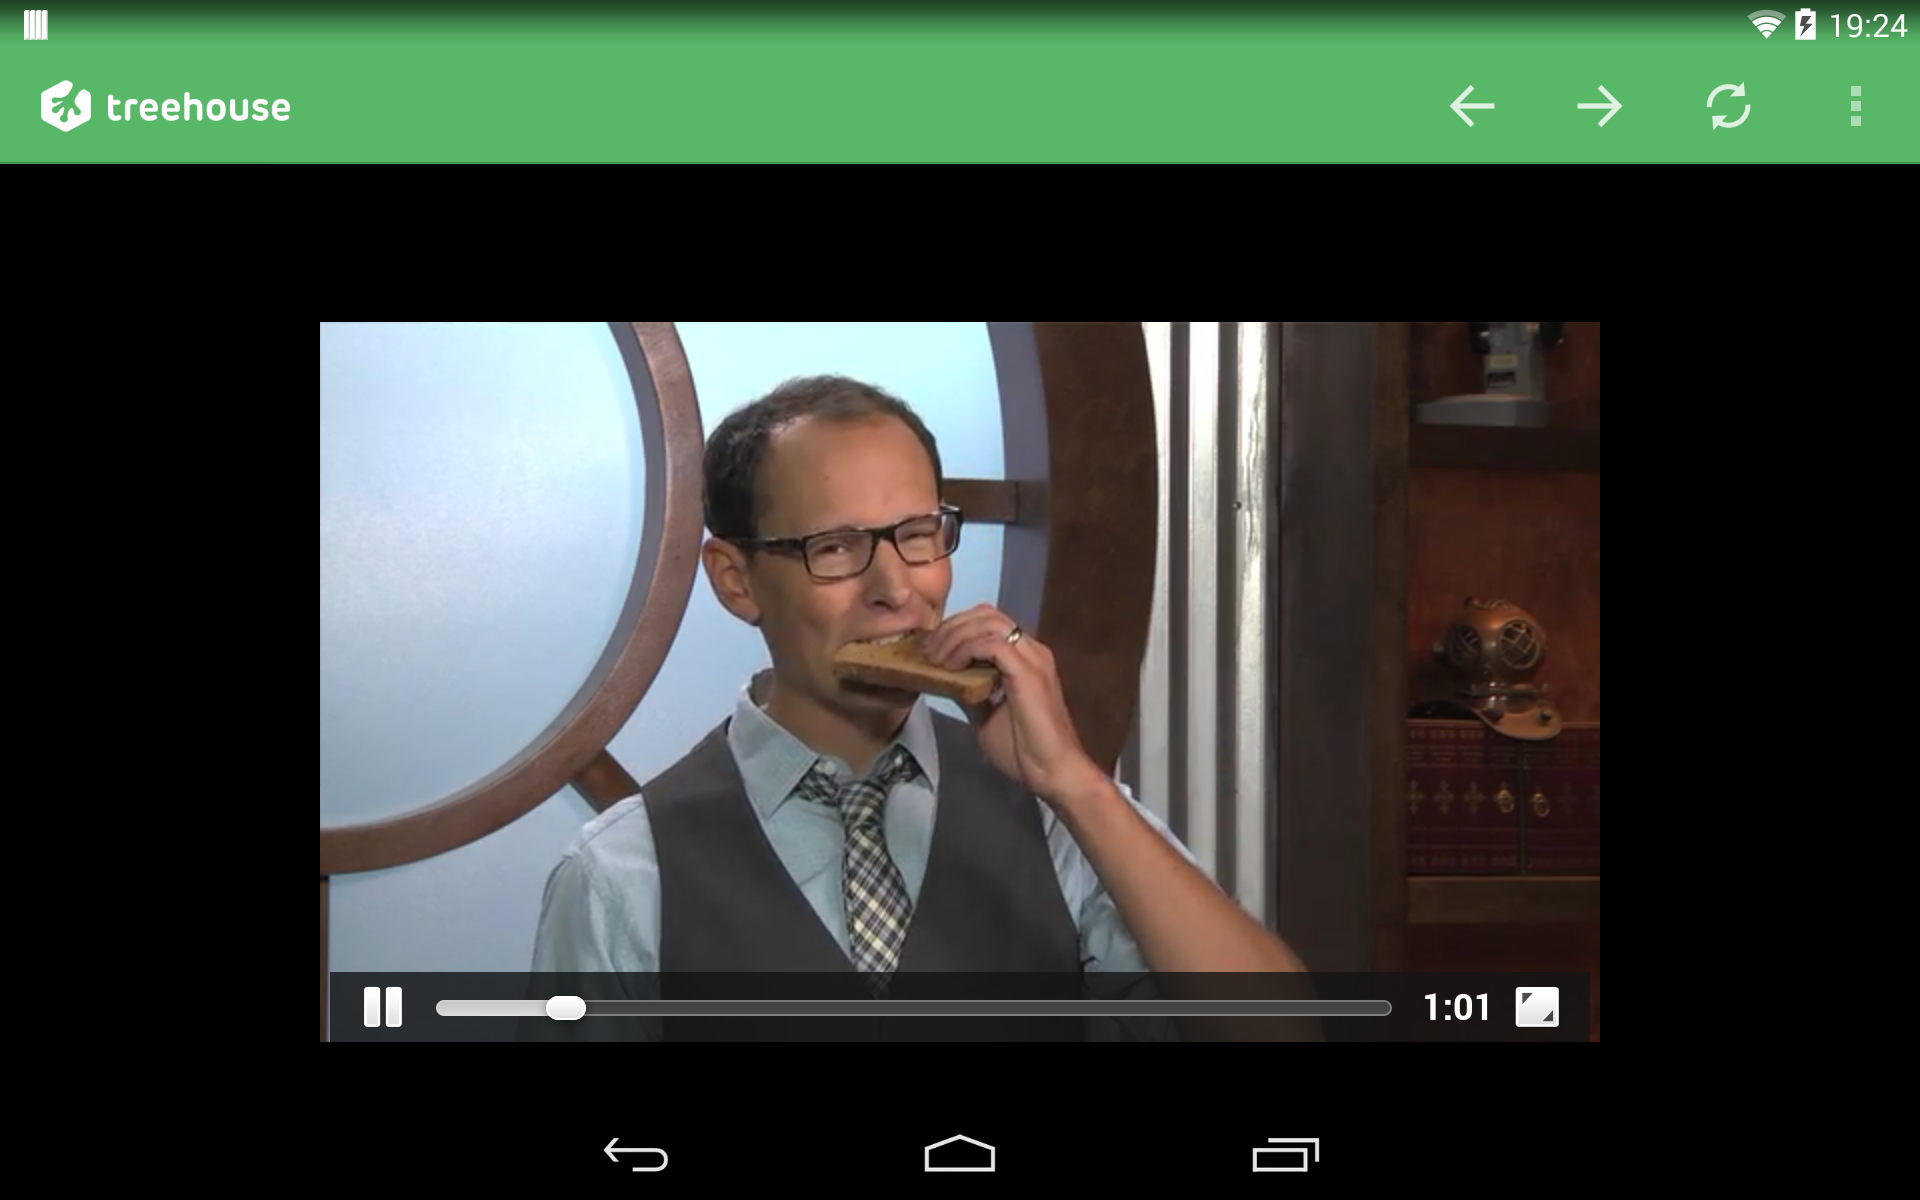 HTML5 video won't go fullscreen in WebView  | Treehouse Community